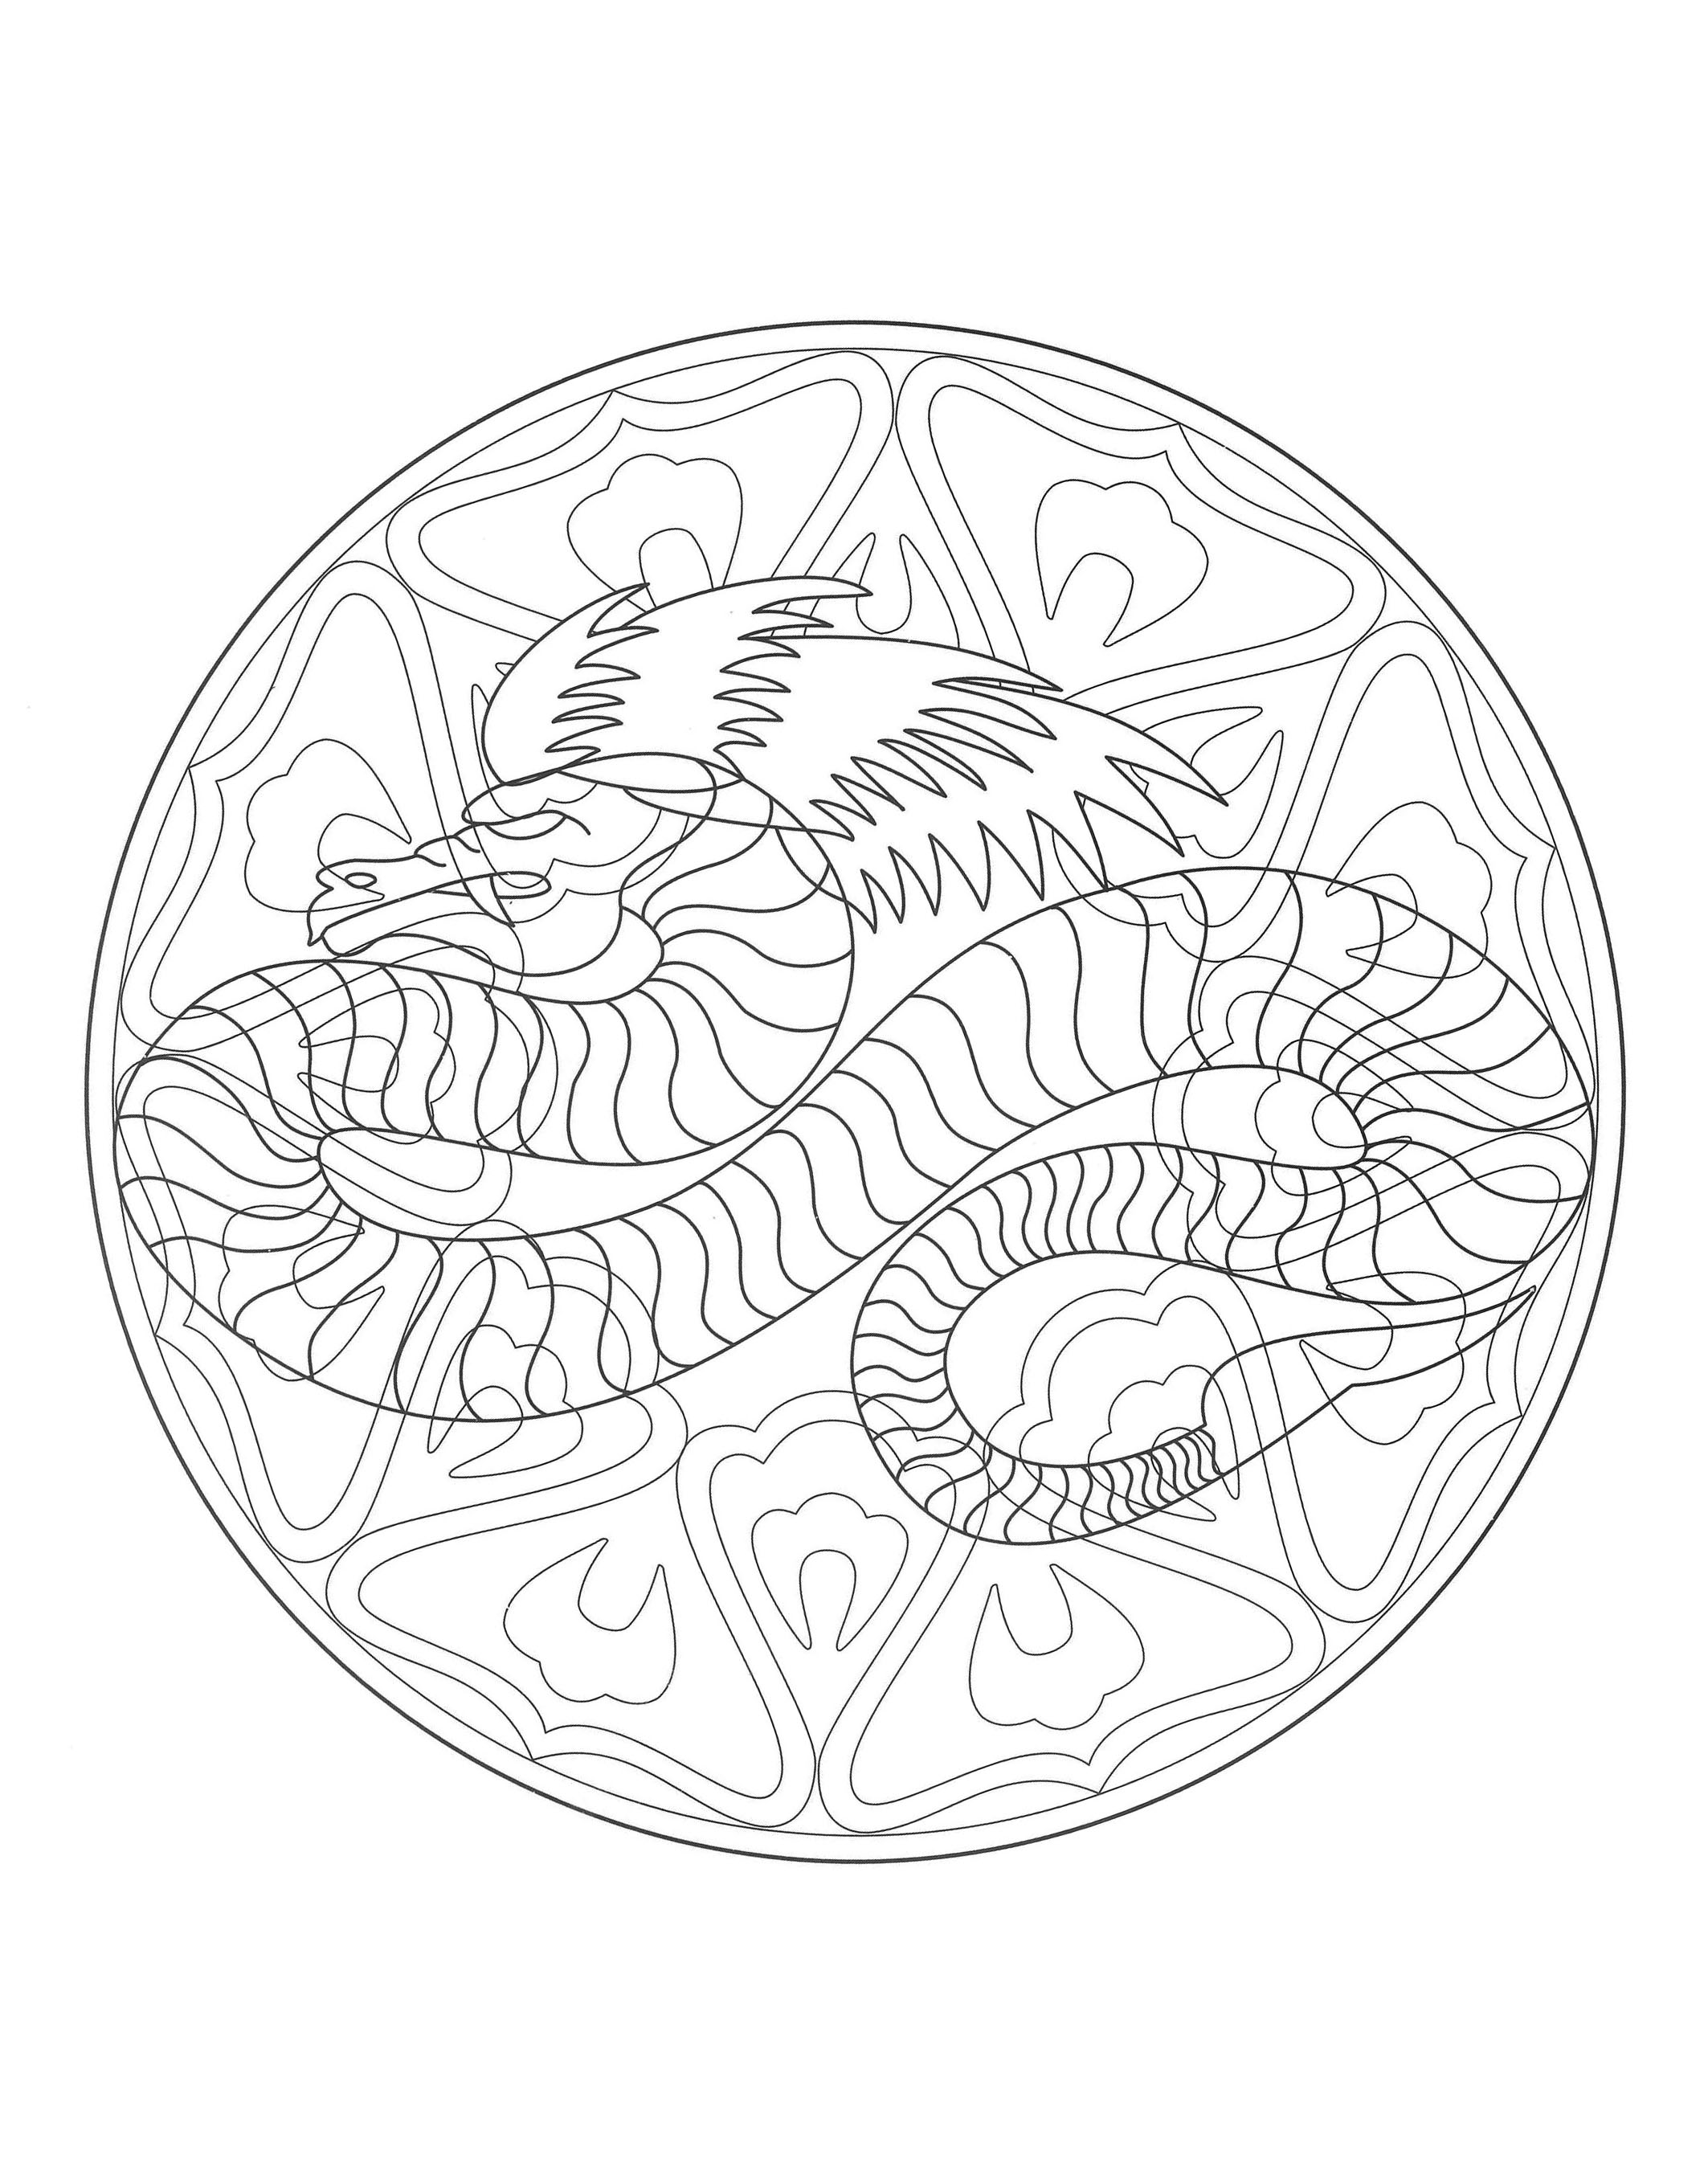 Mandala dragon 4